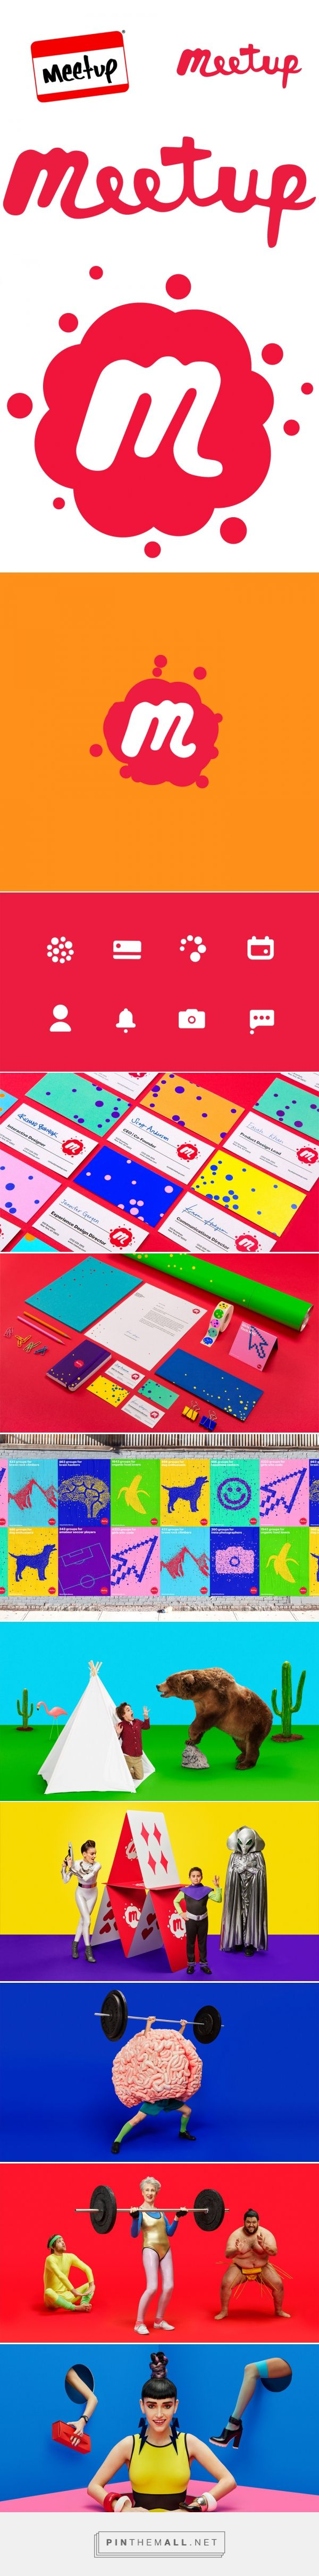 Brand New: New Logo and Identity for Meetup by Sagmeister & Walsh... - a grouped images picture - Pin Them All